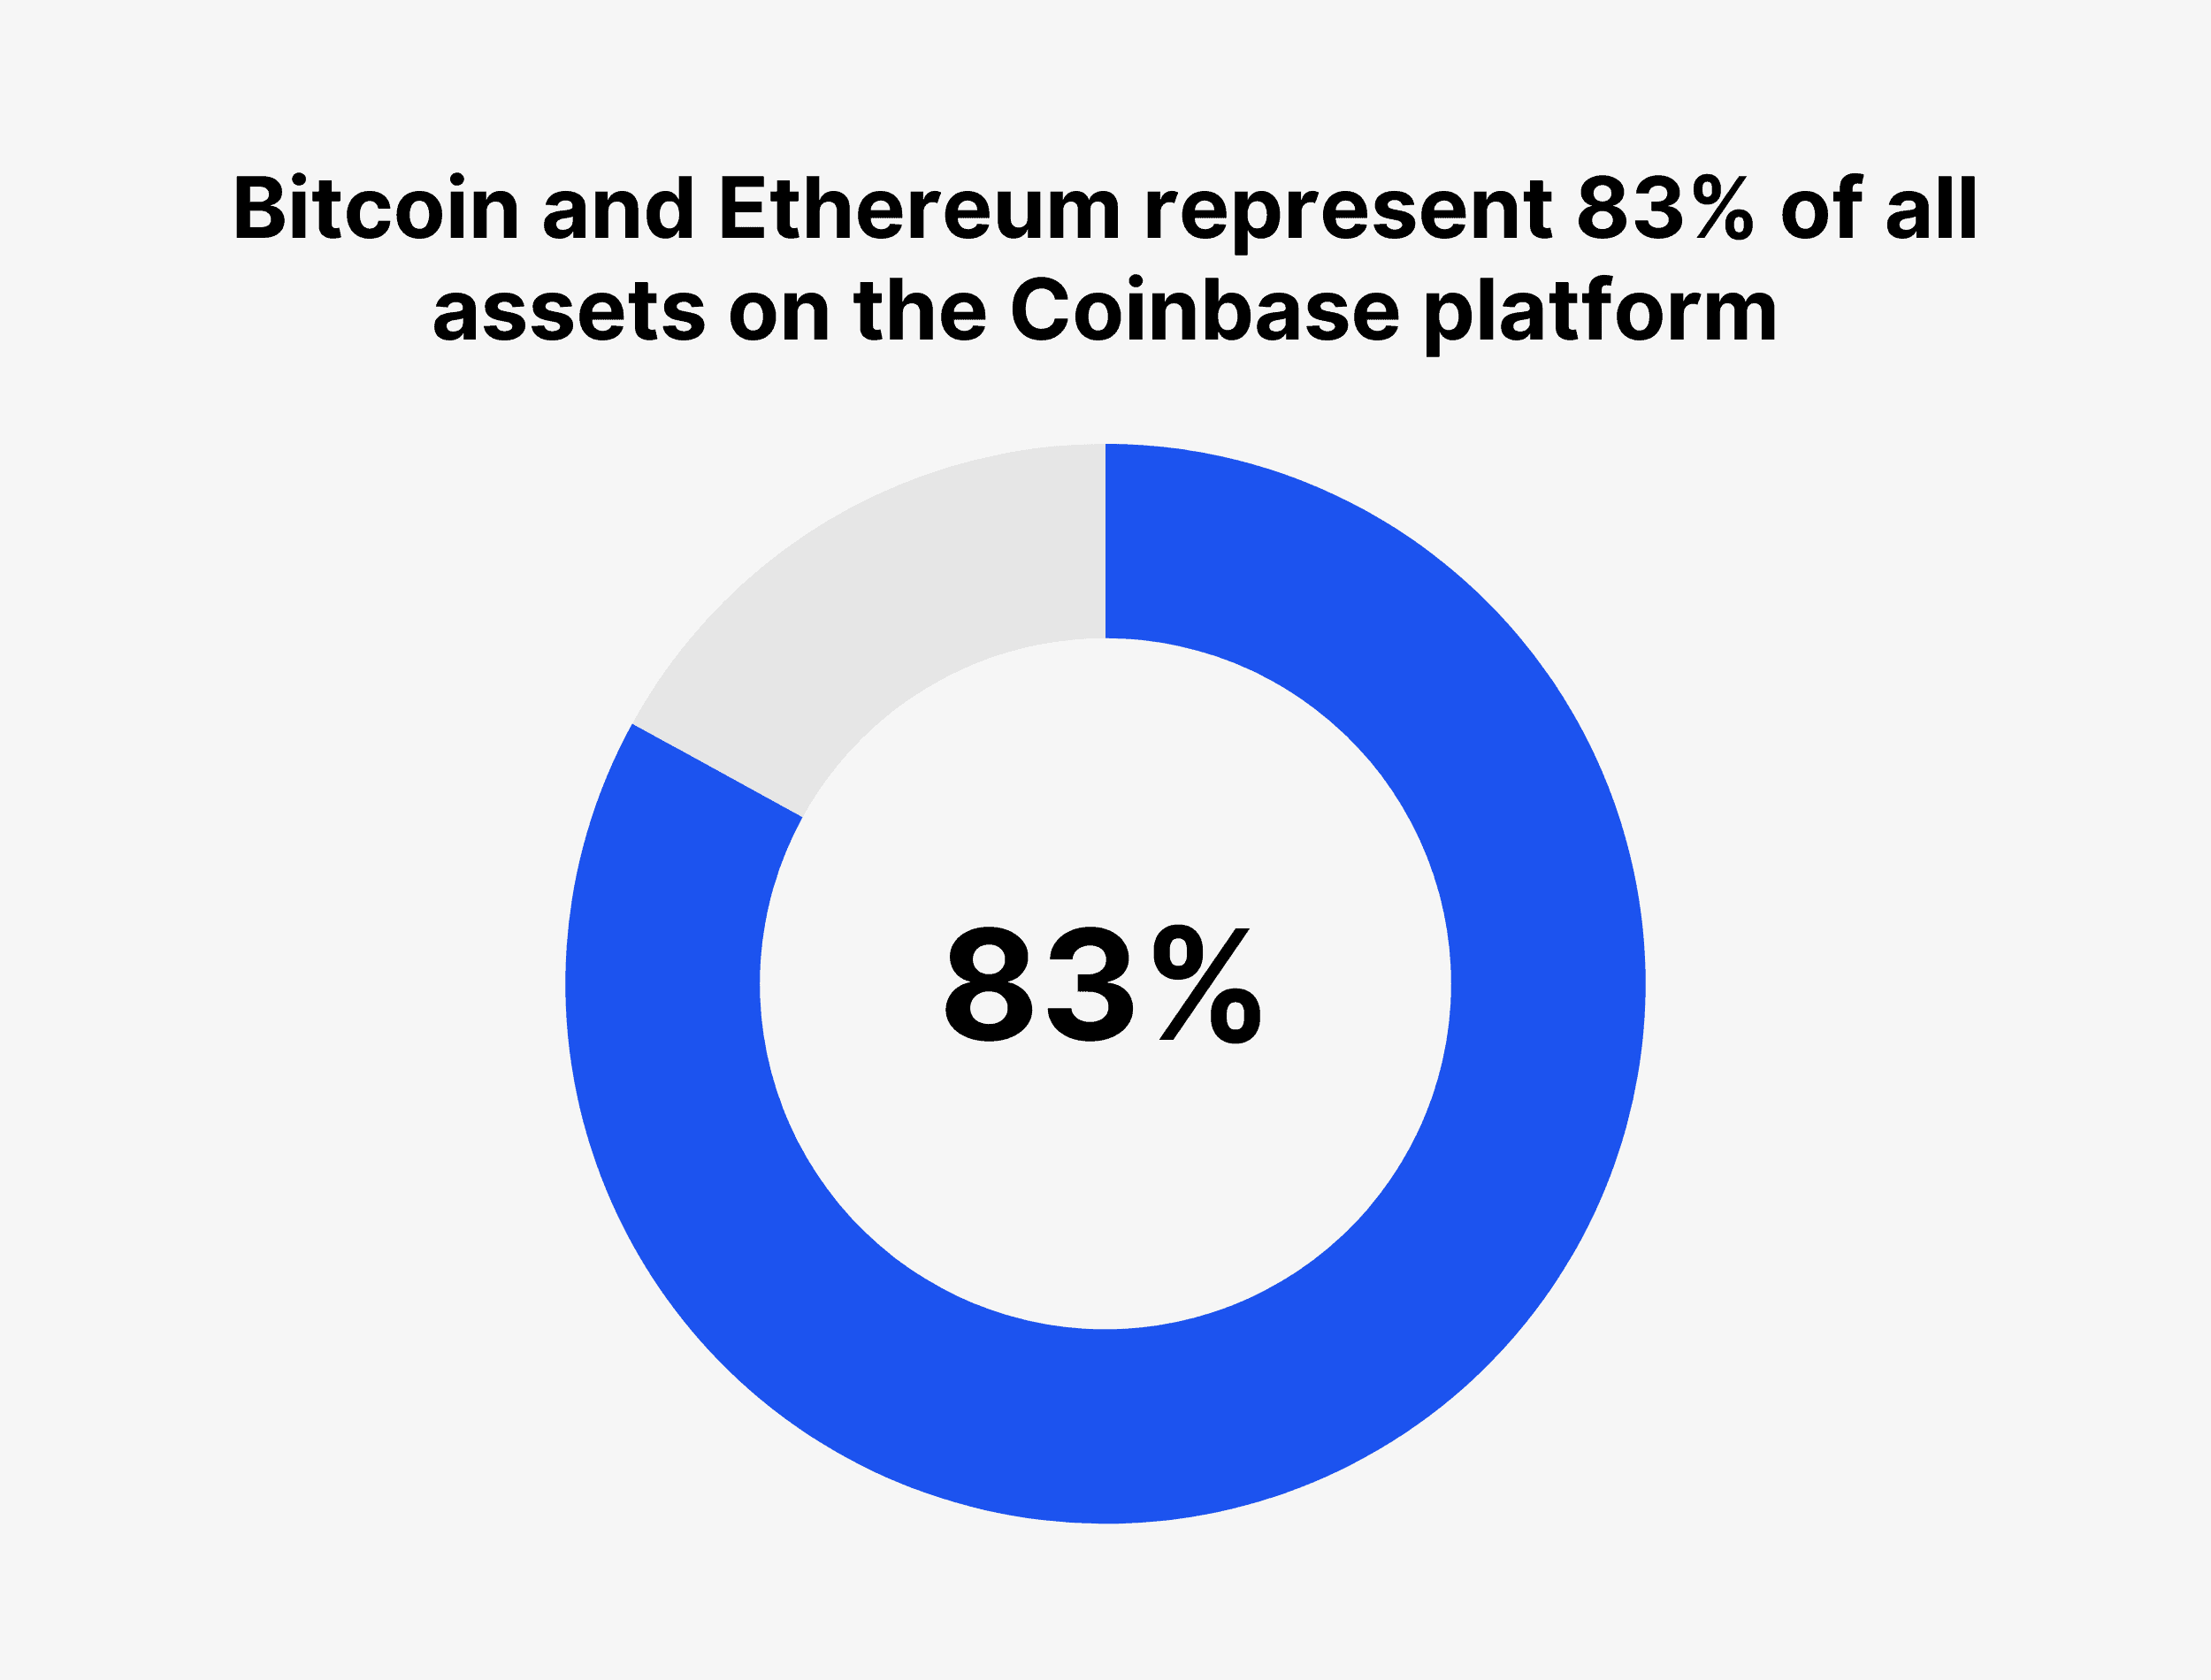 Bitcoin and Ethereum represent 83% of all assets on the Coinbase platform